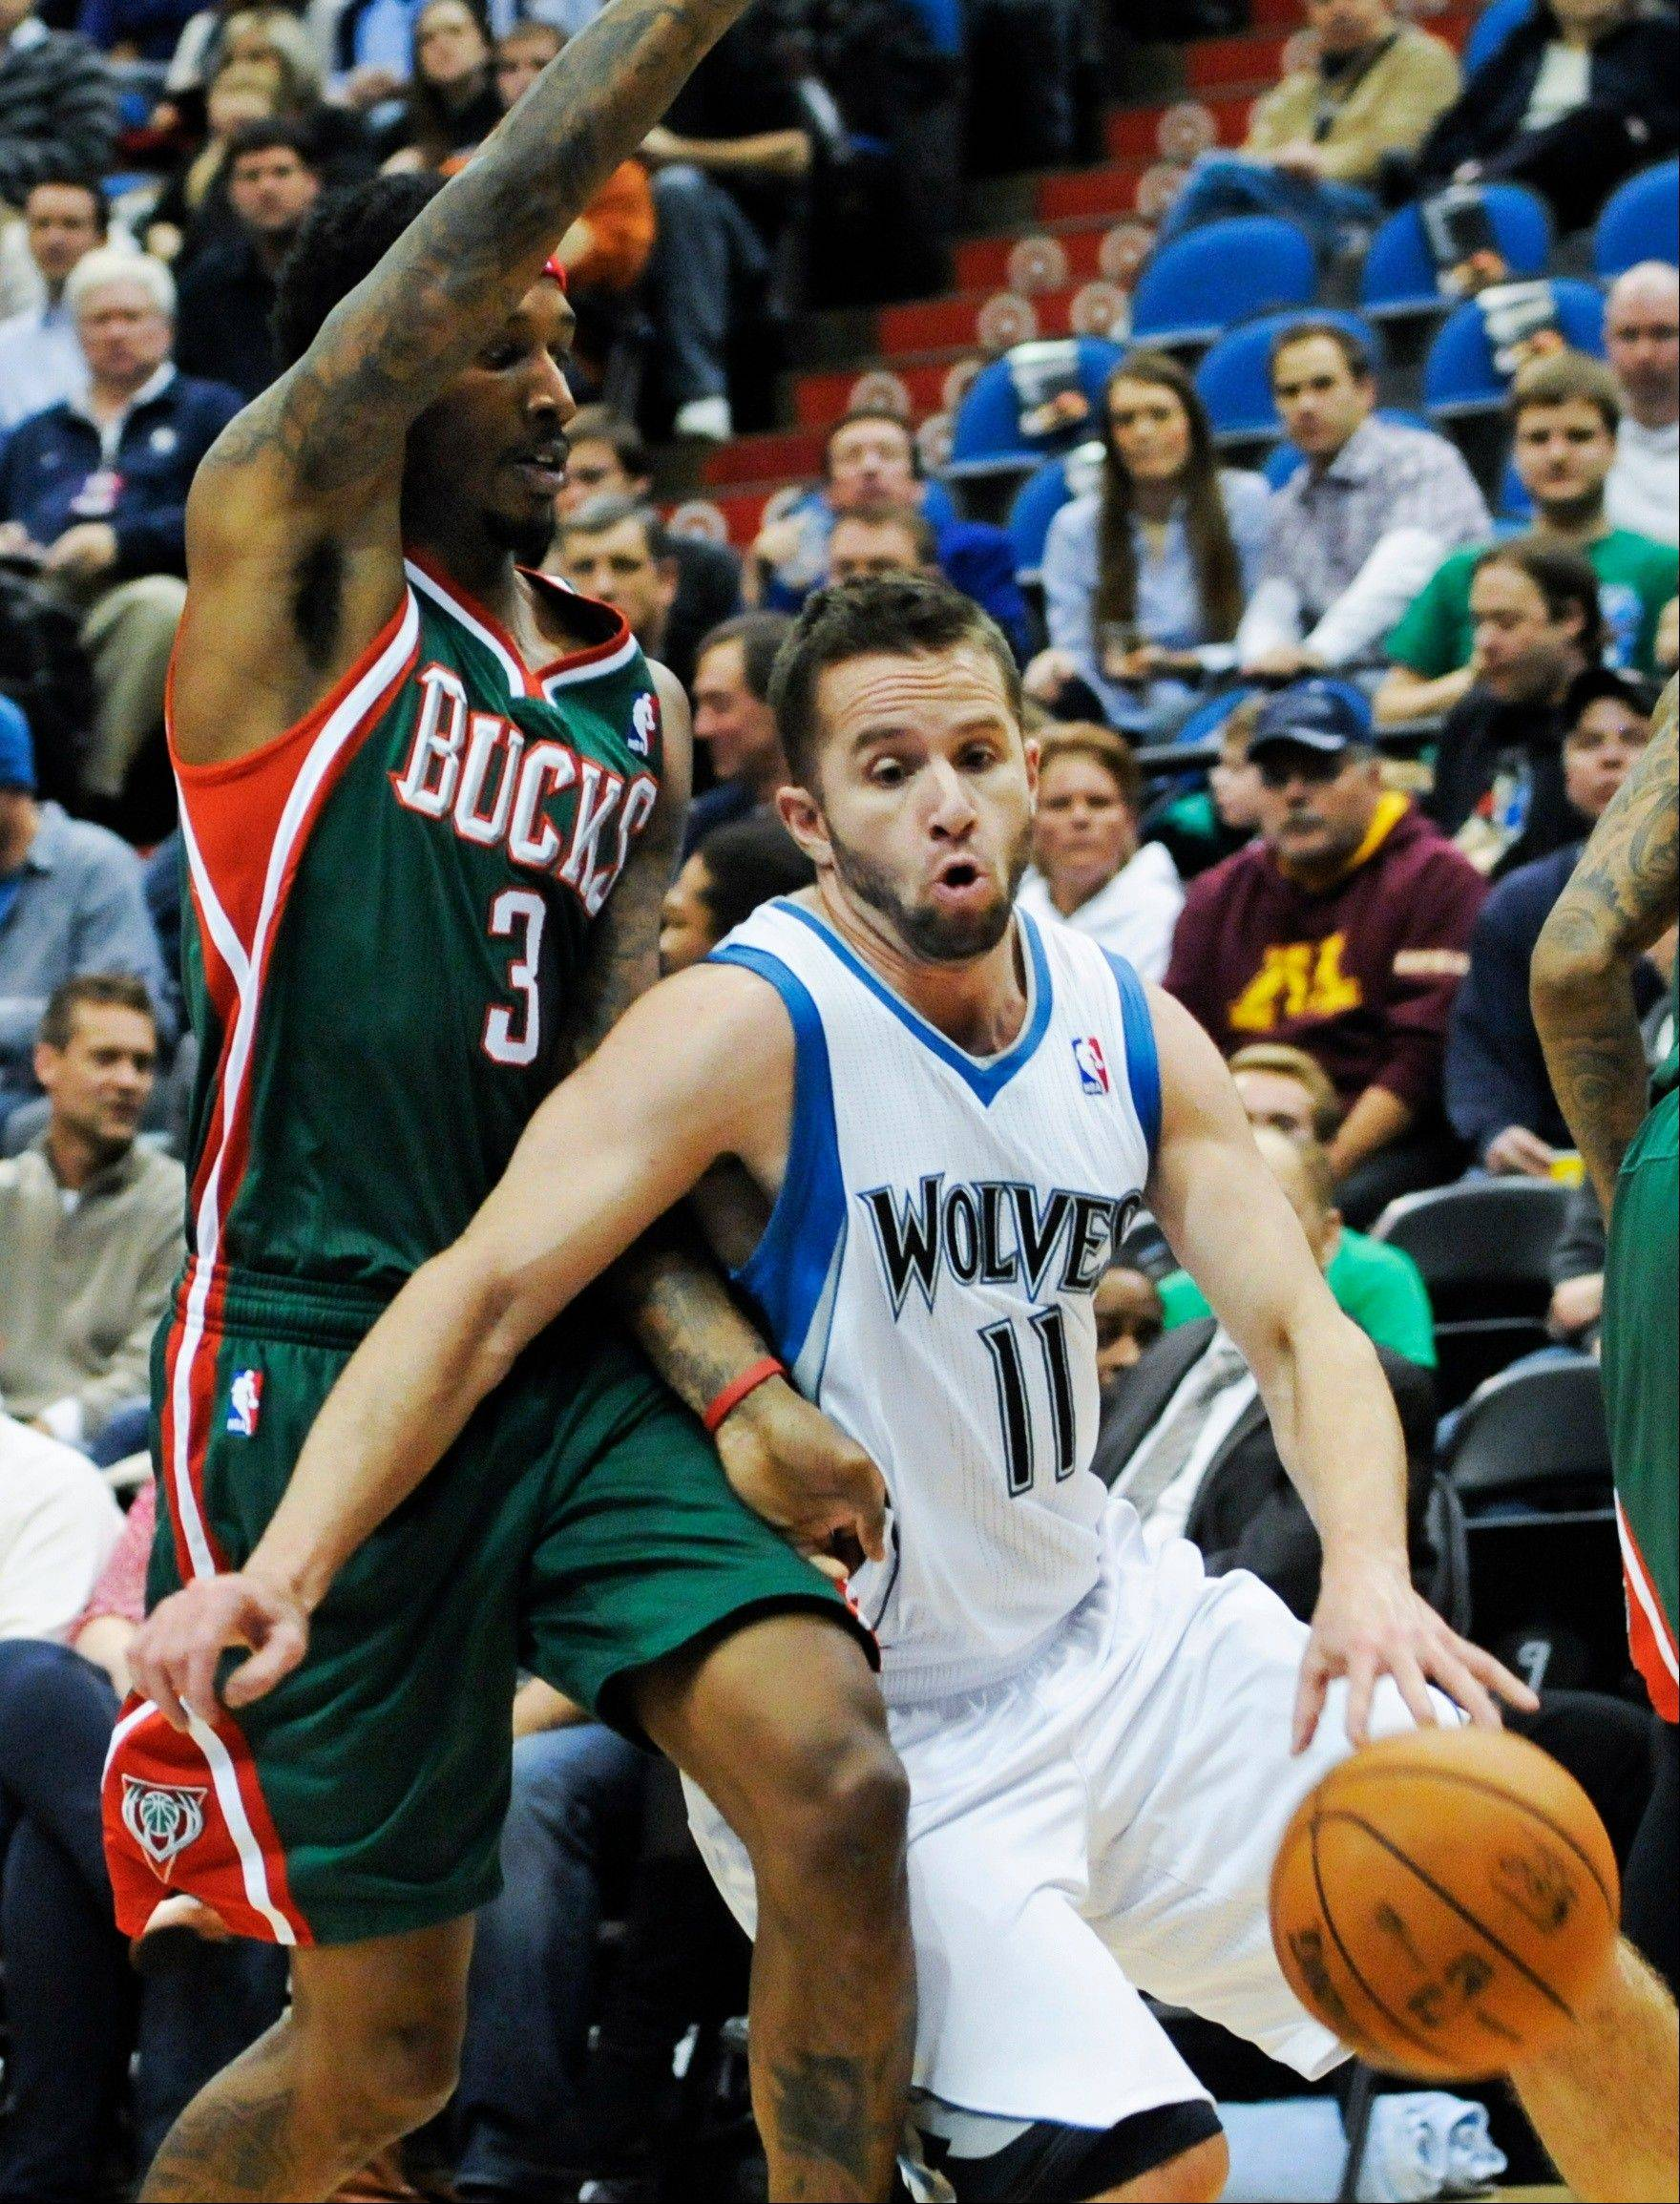 Minnesota Timberwolves guard J.J. Barea, right, tries to drive around Milwaukee Bucks' Brandon Jennings Friday during the first half in Minneapolis.